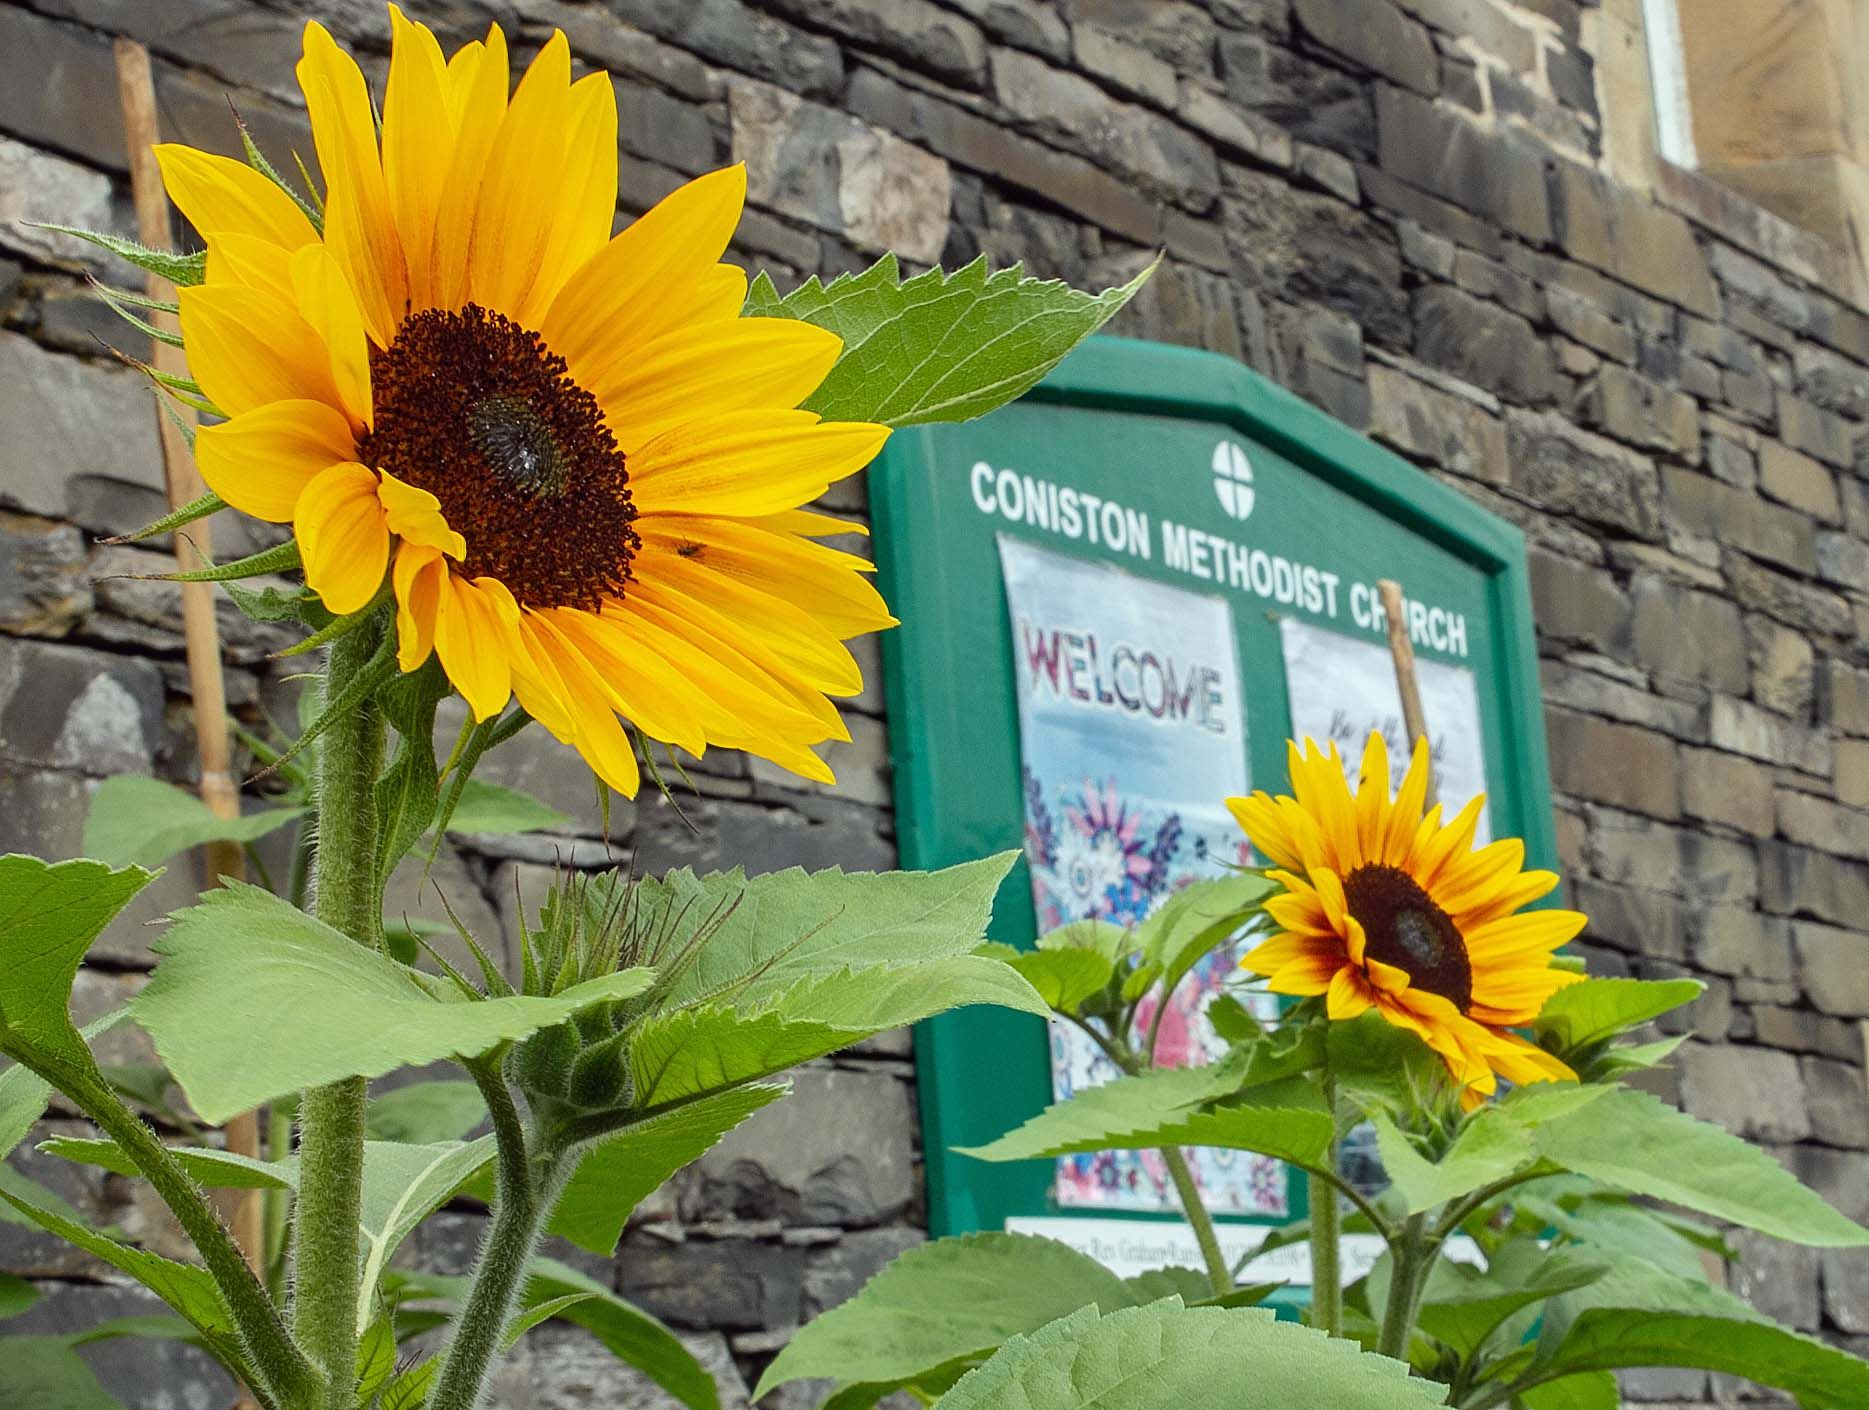 Sunflowers at Coniston